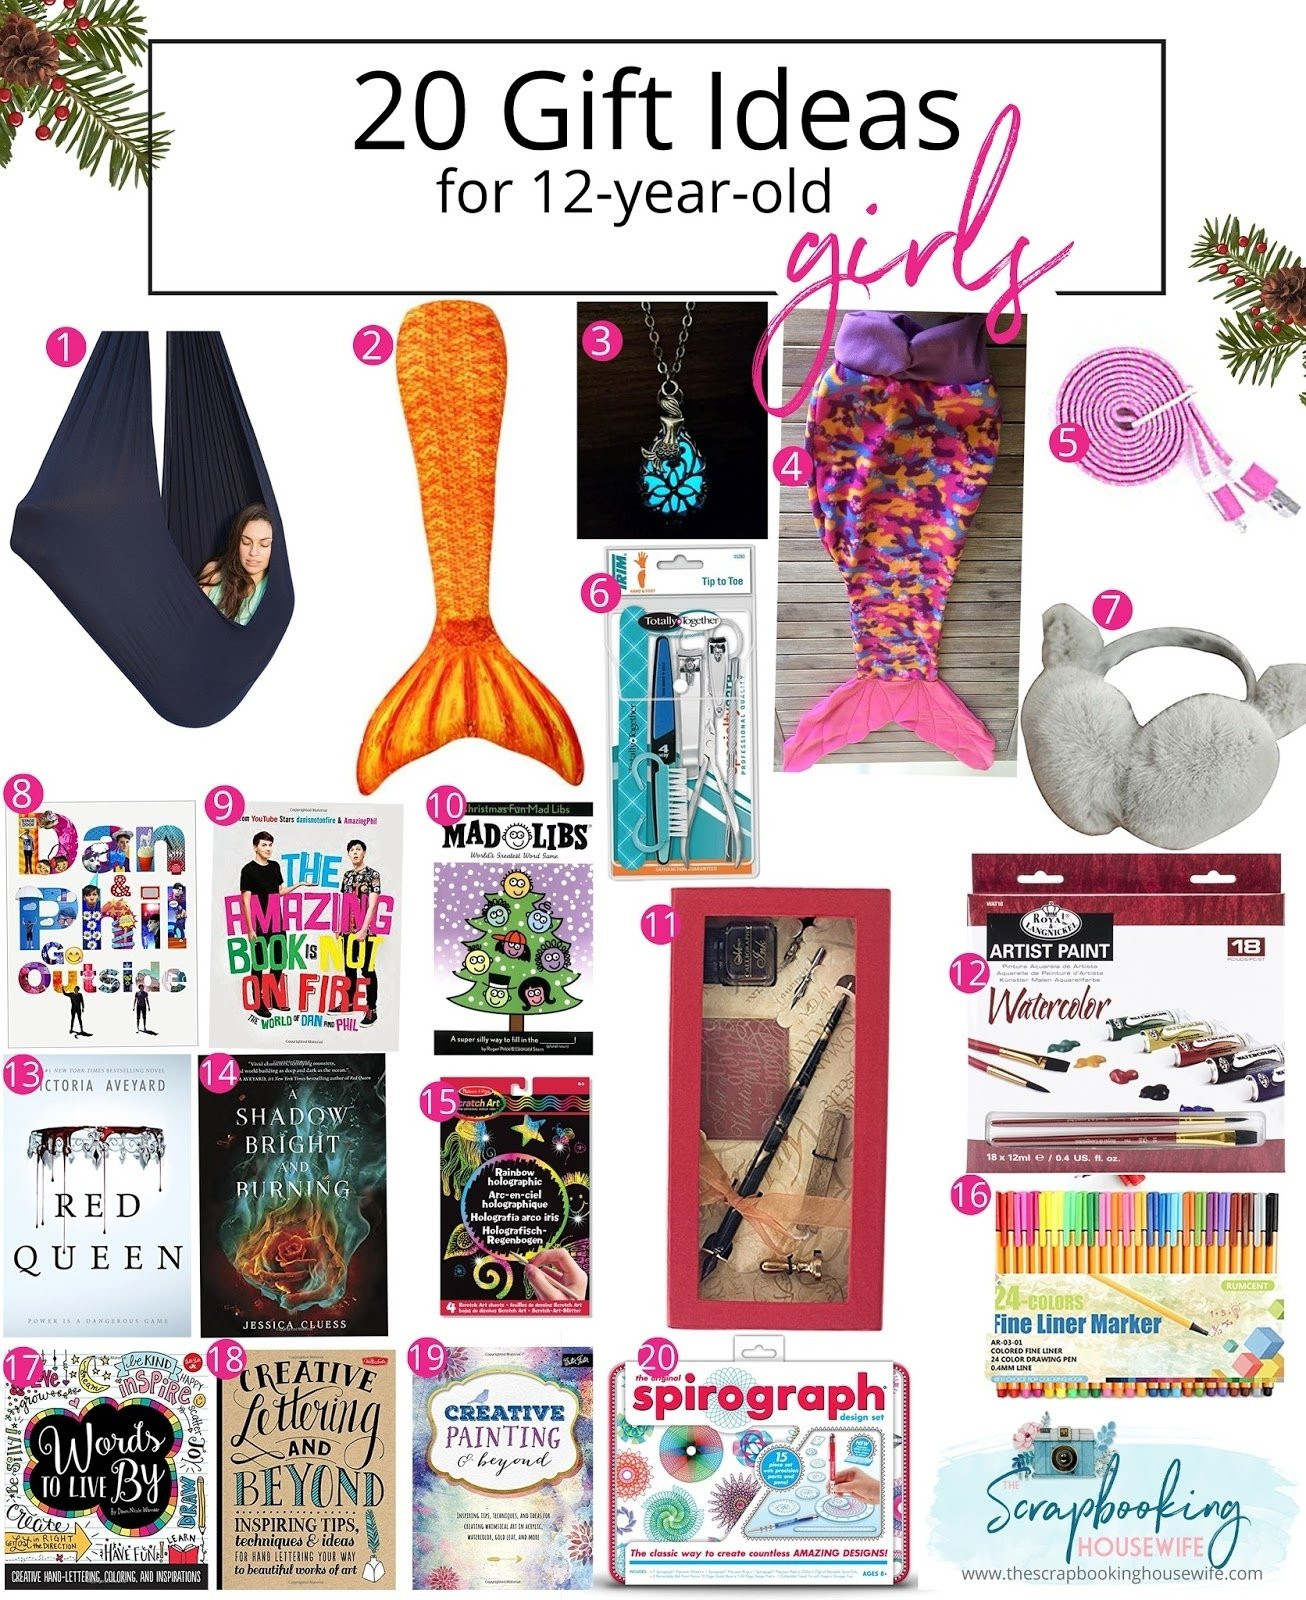 Gift Ideas For 18 Year Old Girls  10 Lovely 18 Year Old Christmas Gift Ideas